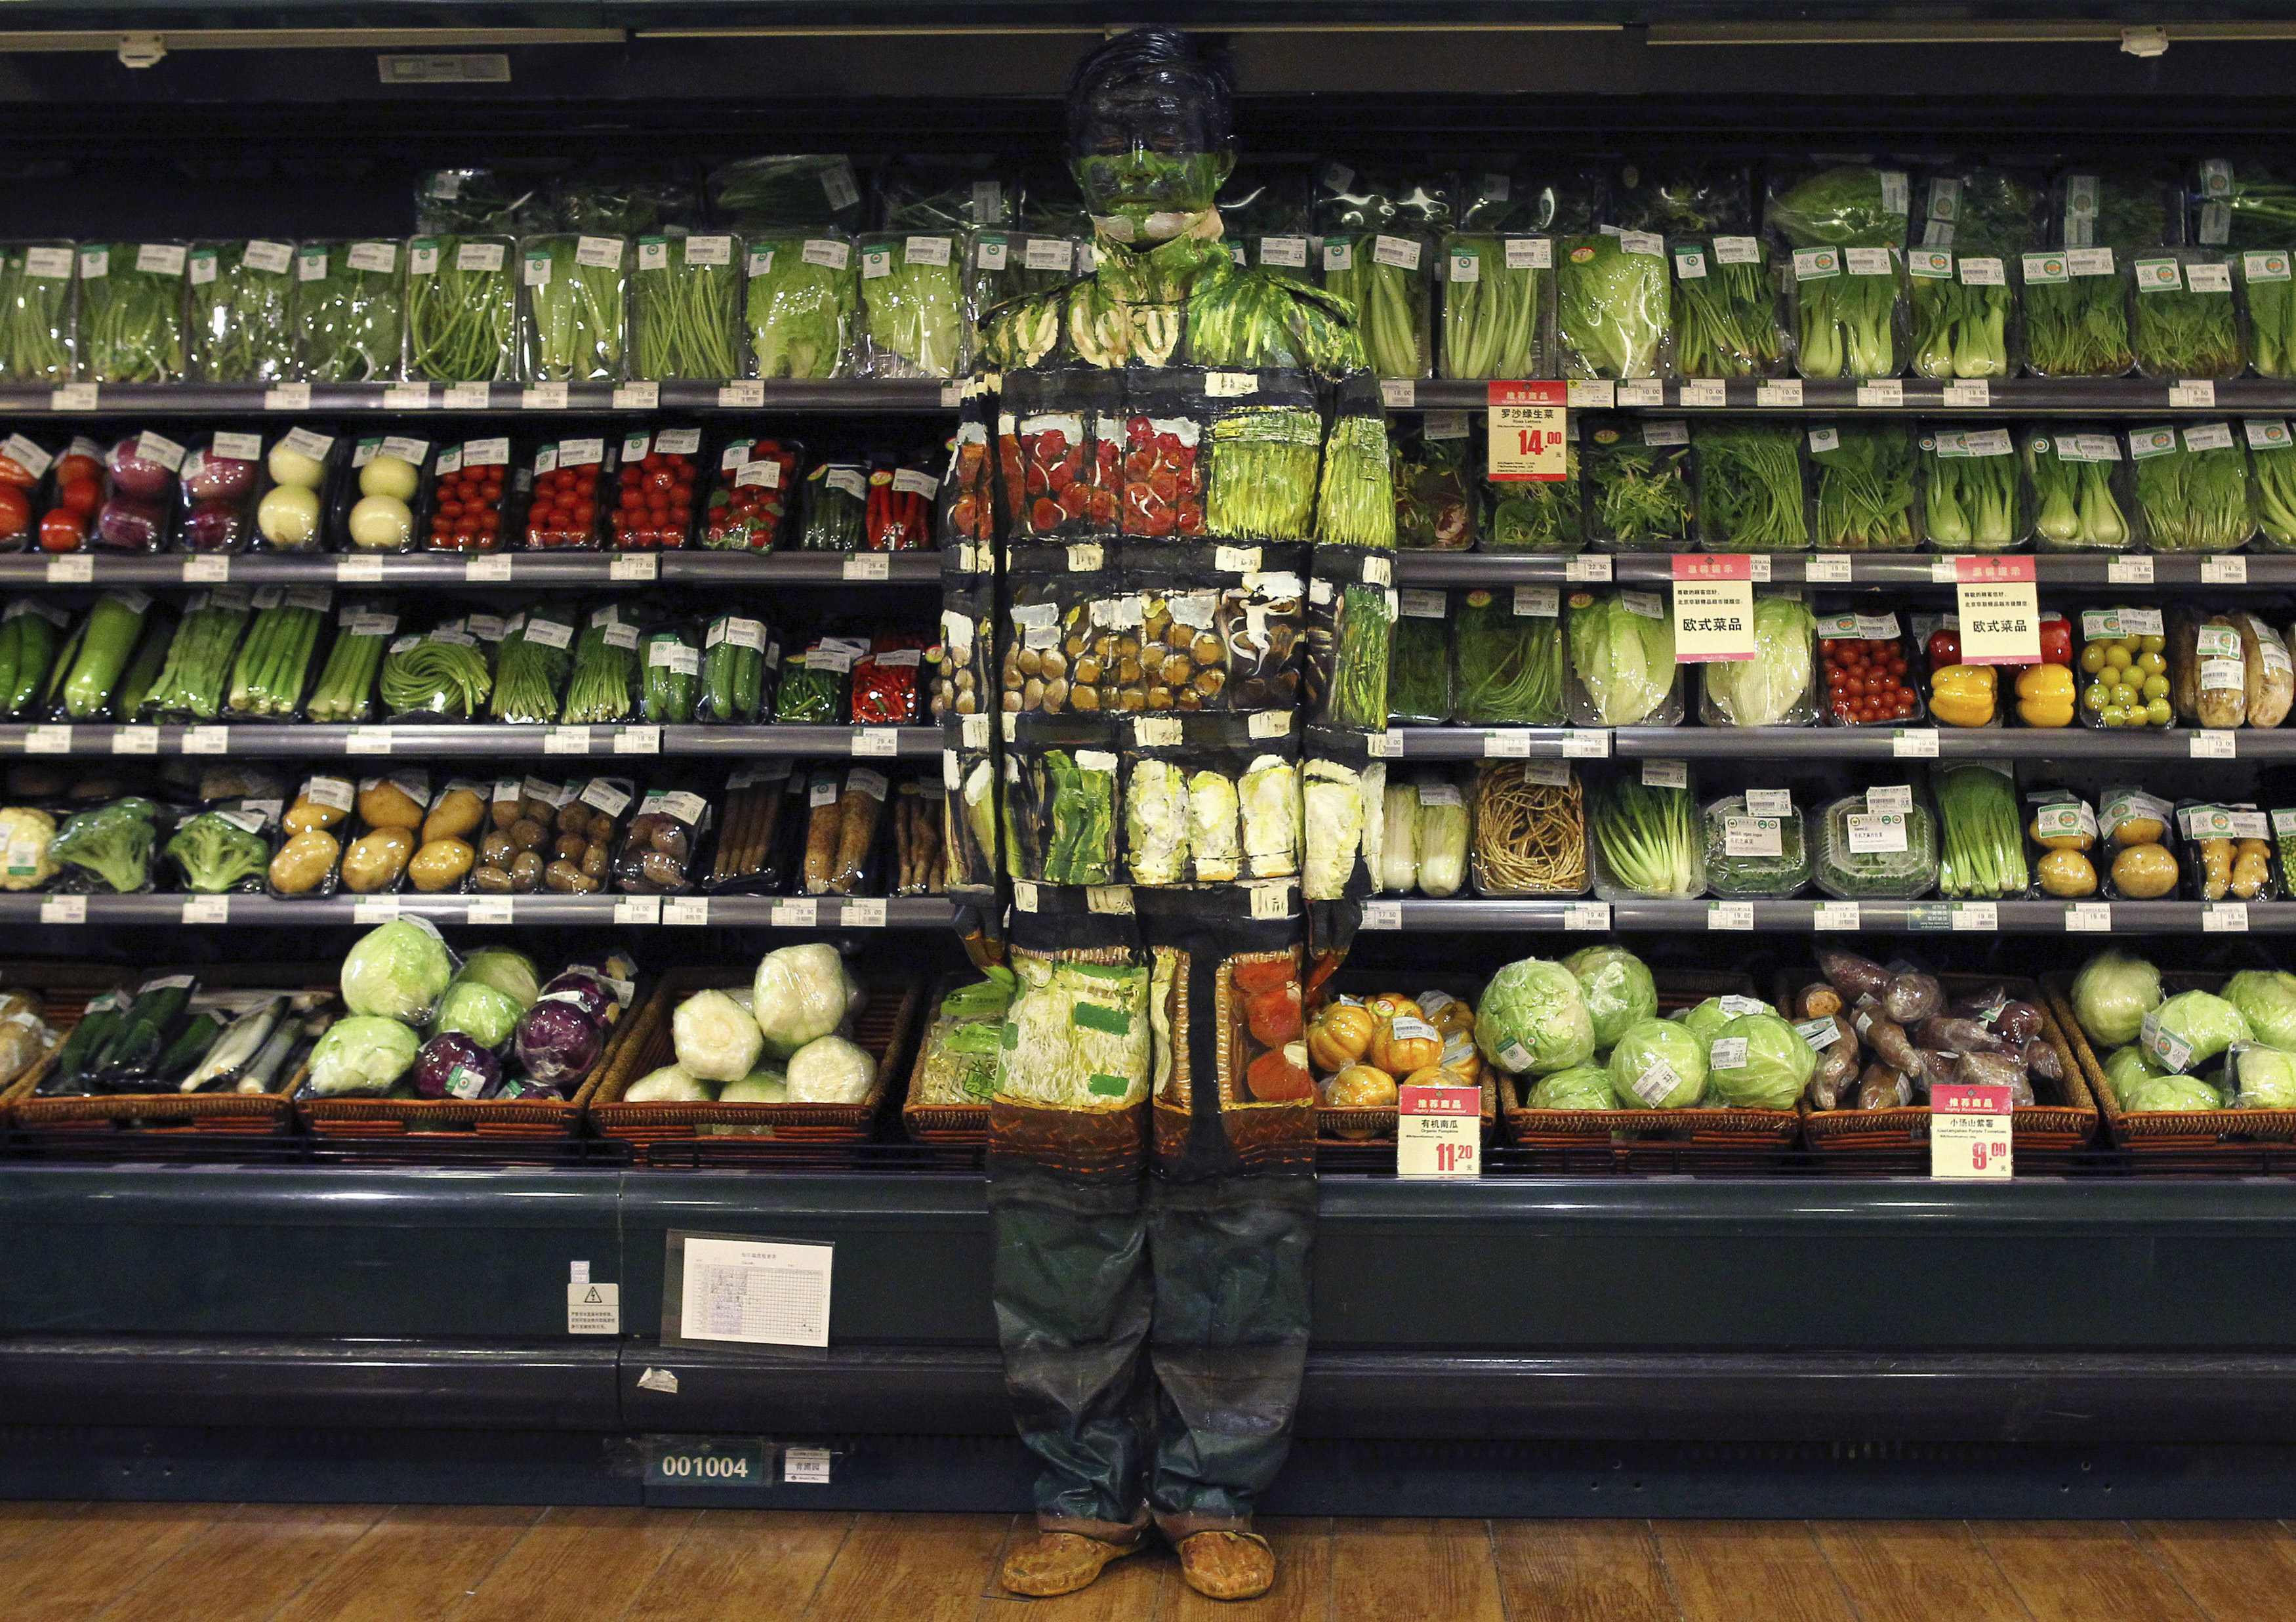 """Artist Liu Bolin demonstrates an art installation by blending in with vegetables displayed on the shelves at a supermarket in Beijing November 10, 2011. Liu, also known as the 'Vanishing Artist', started practising being """"invisible"""" by means of optical illusions more than six years ago. Picture taken November 10, 2011."""